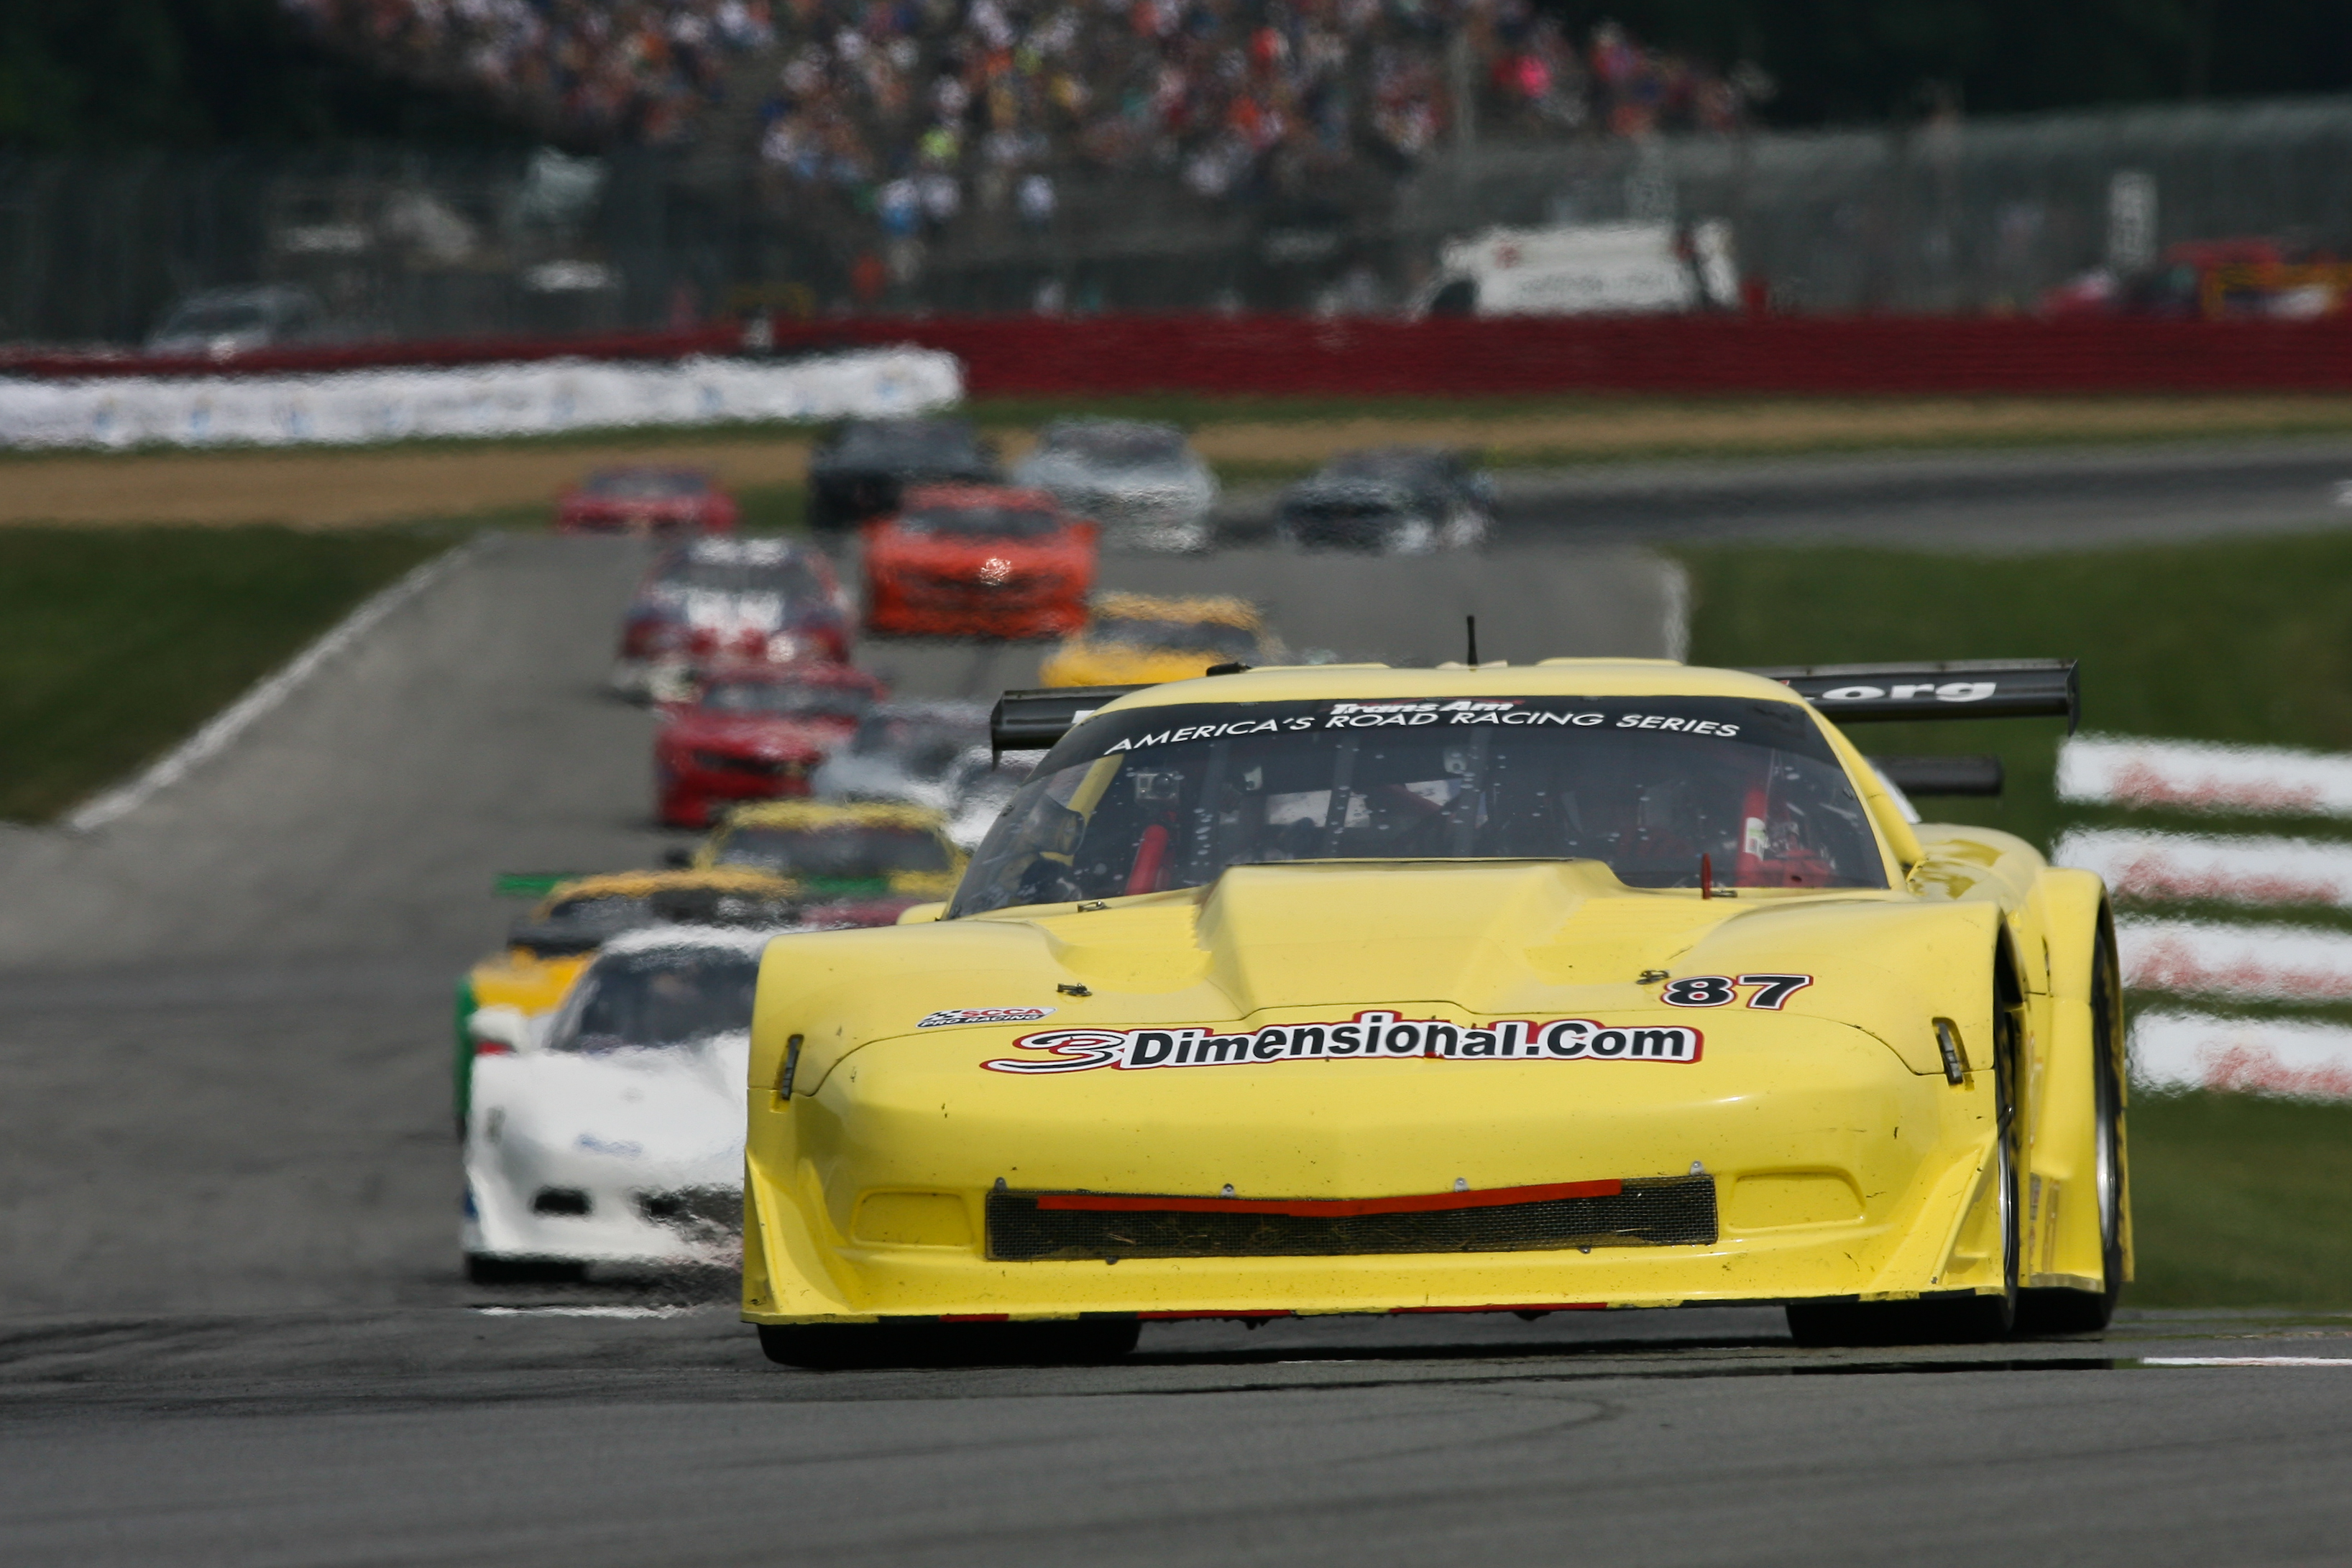 trans am series coming to mid ohio racingjunk news. Black Bedroom Furniture Sets. Home Design Ideas